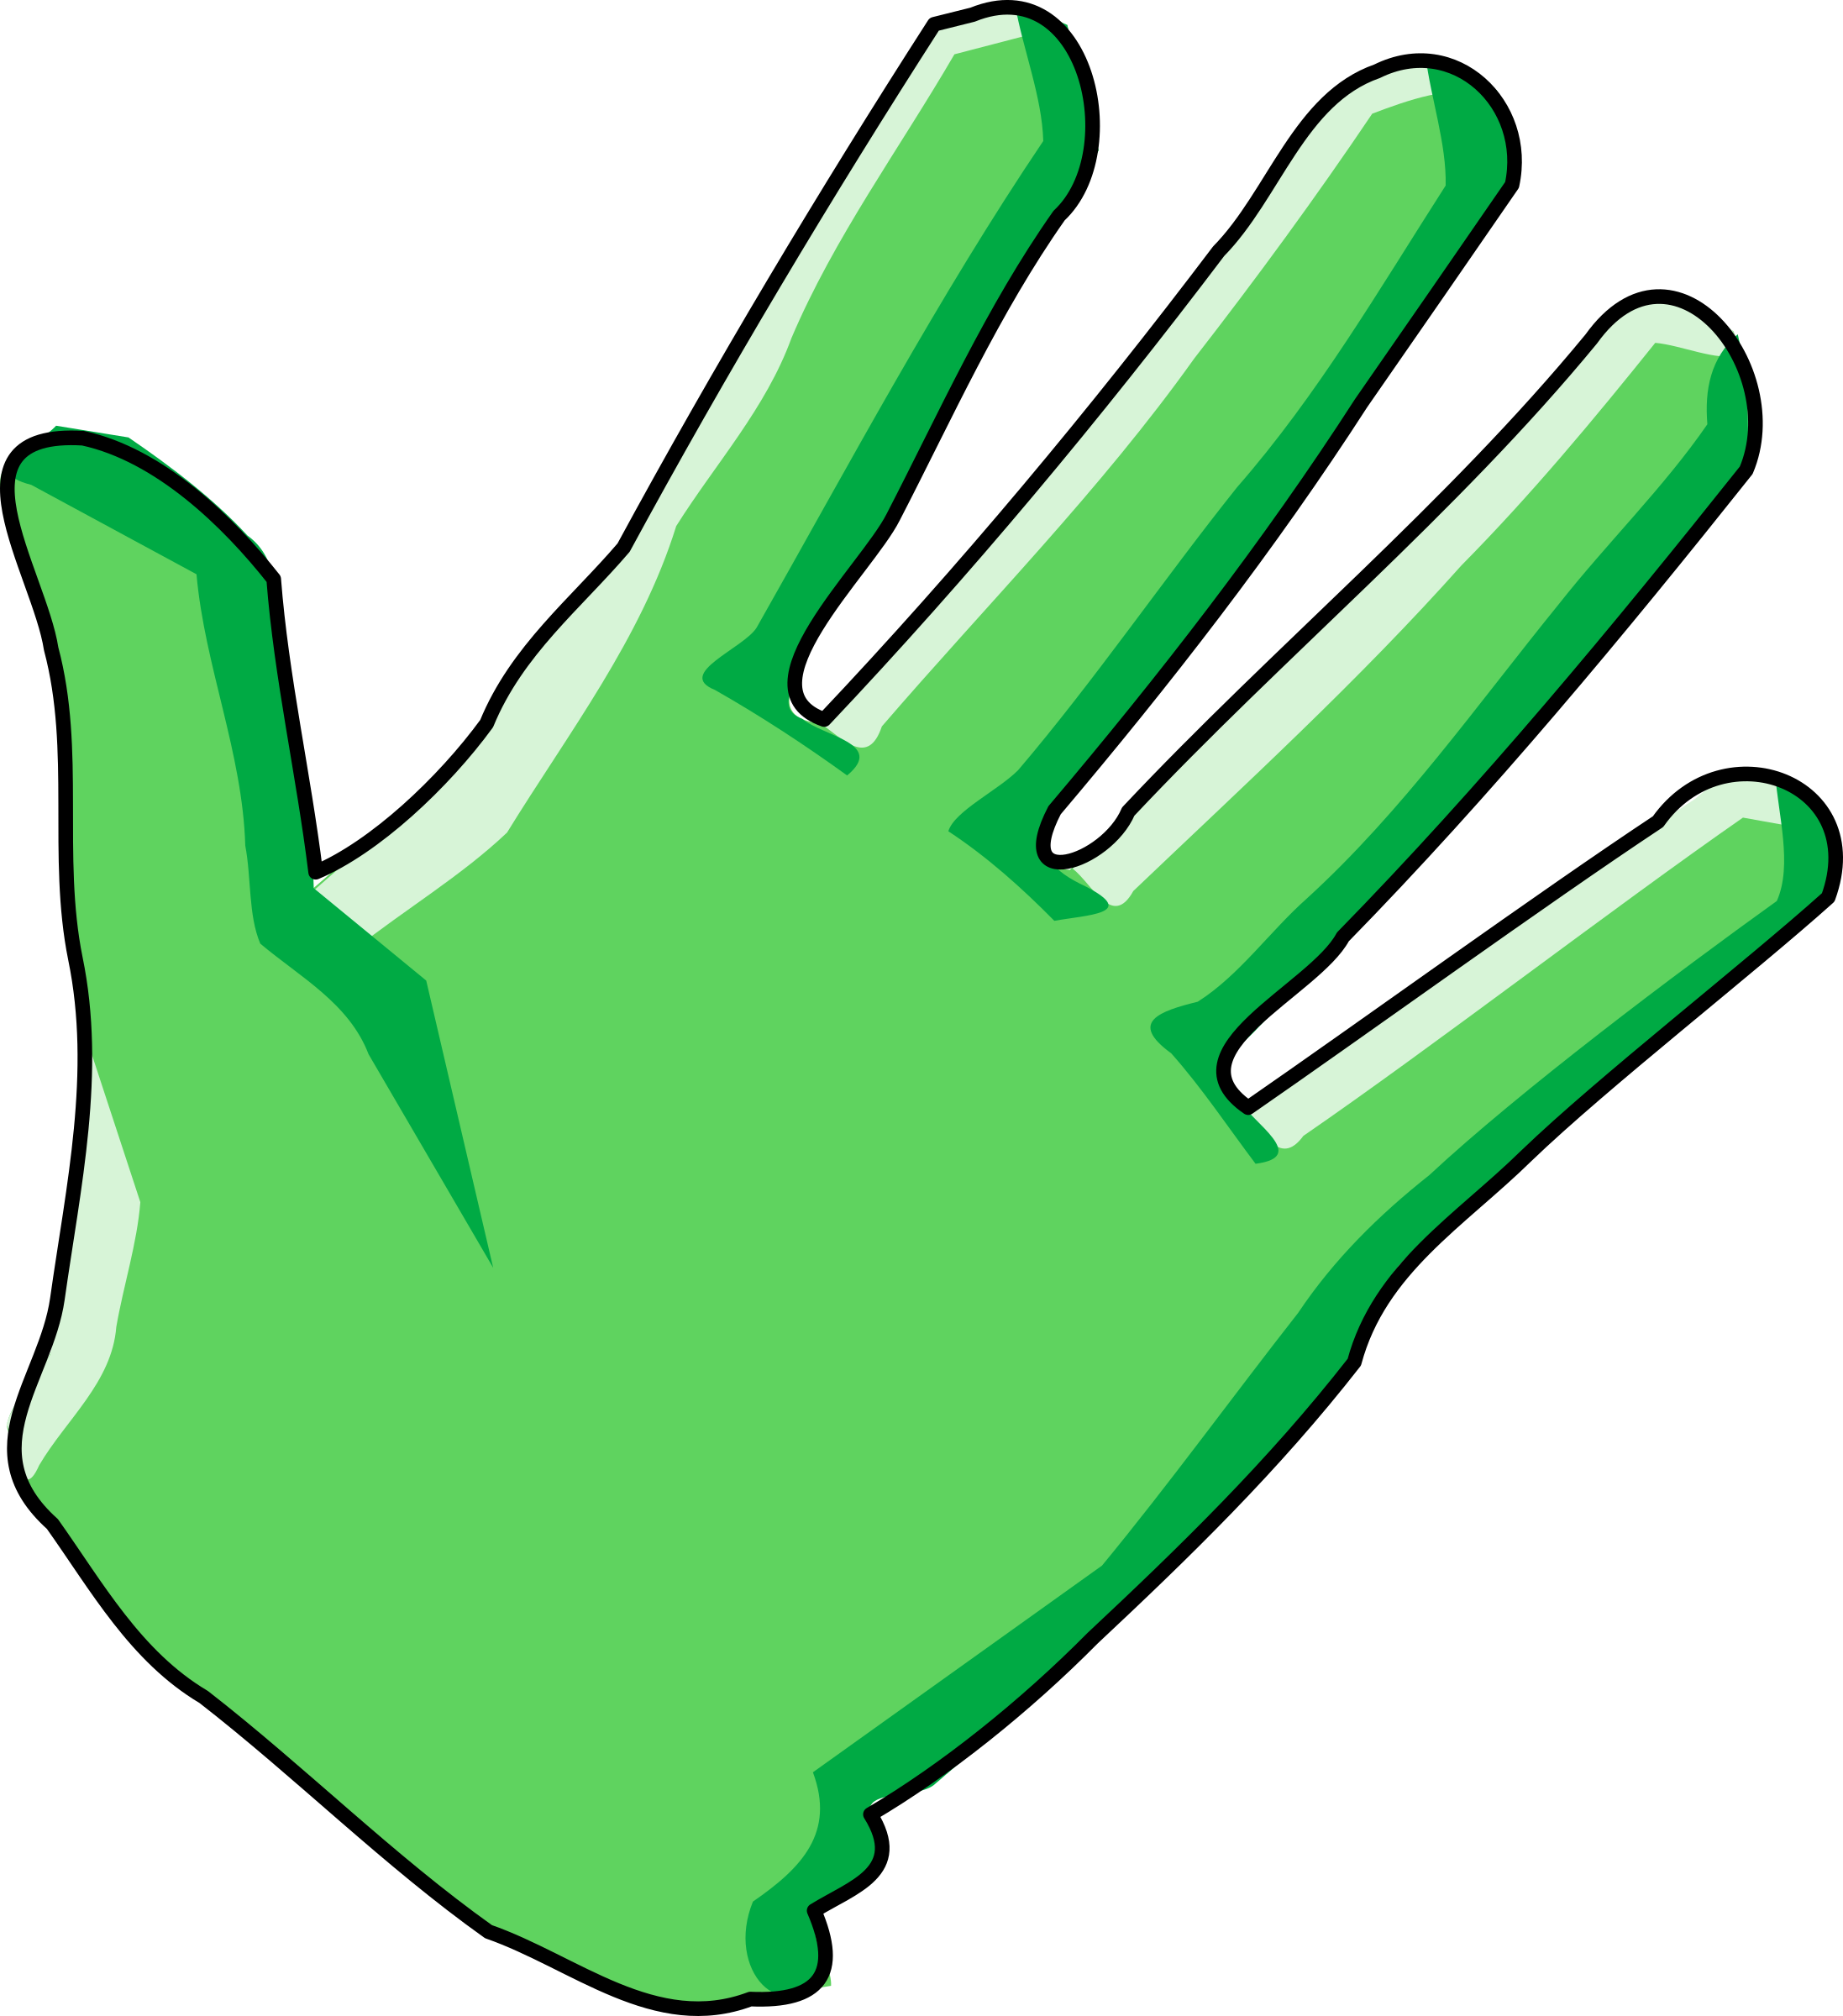 Mittens clipart green. Cleaning pics free download